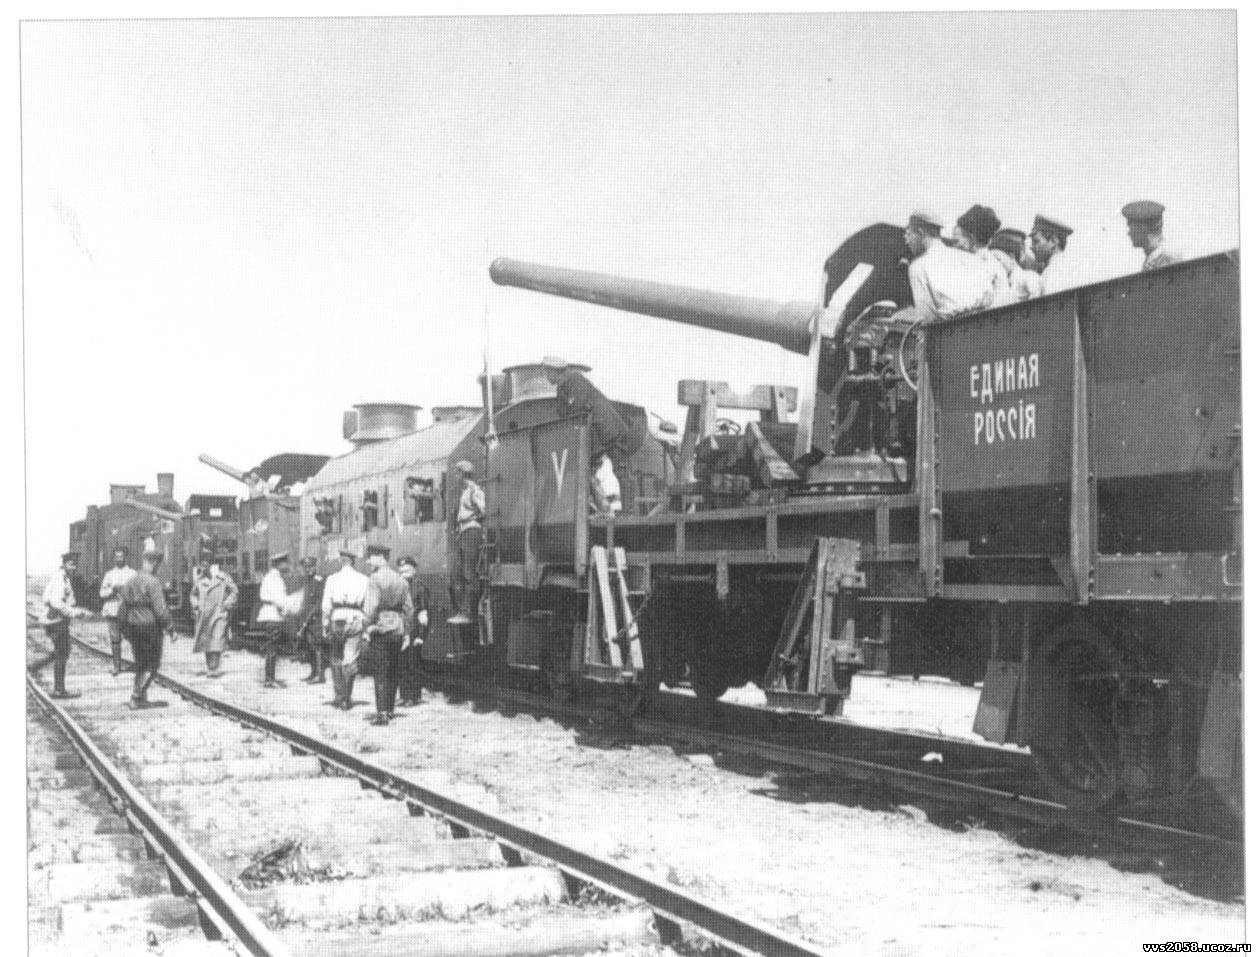 Civilian war the armored trains of the white forces